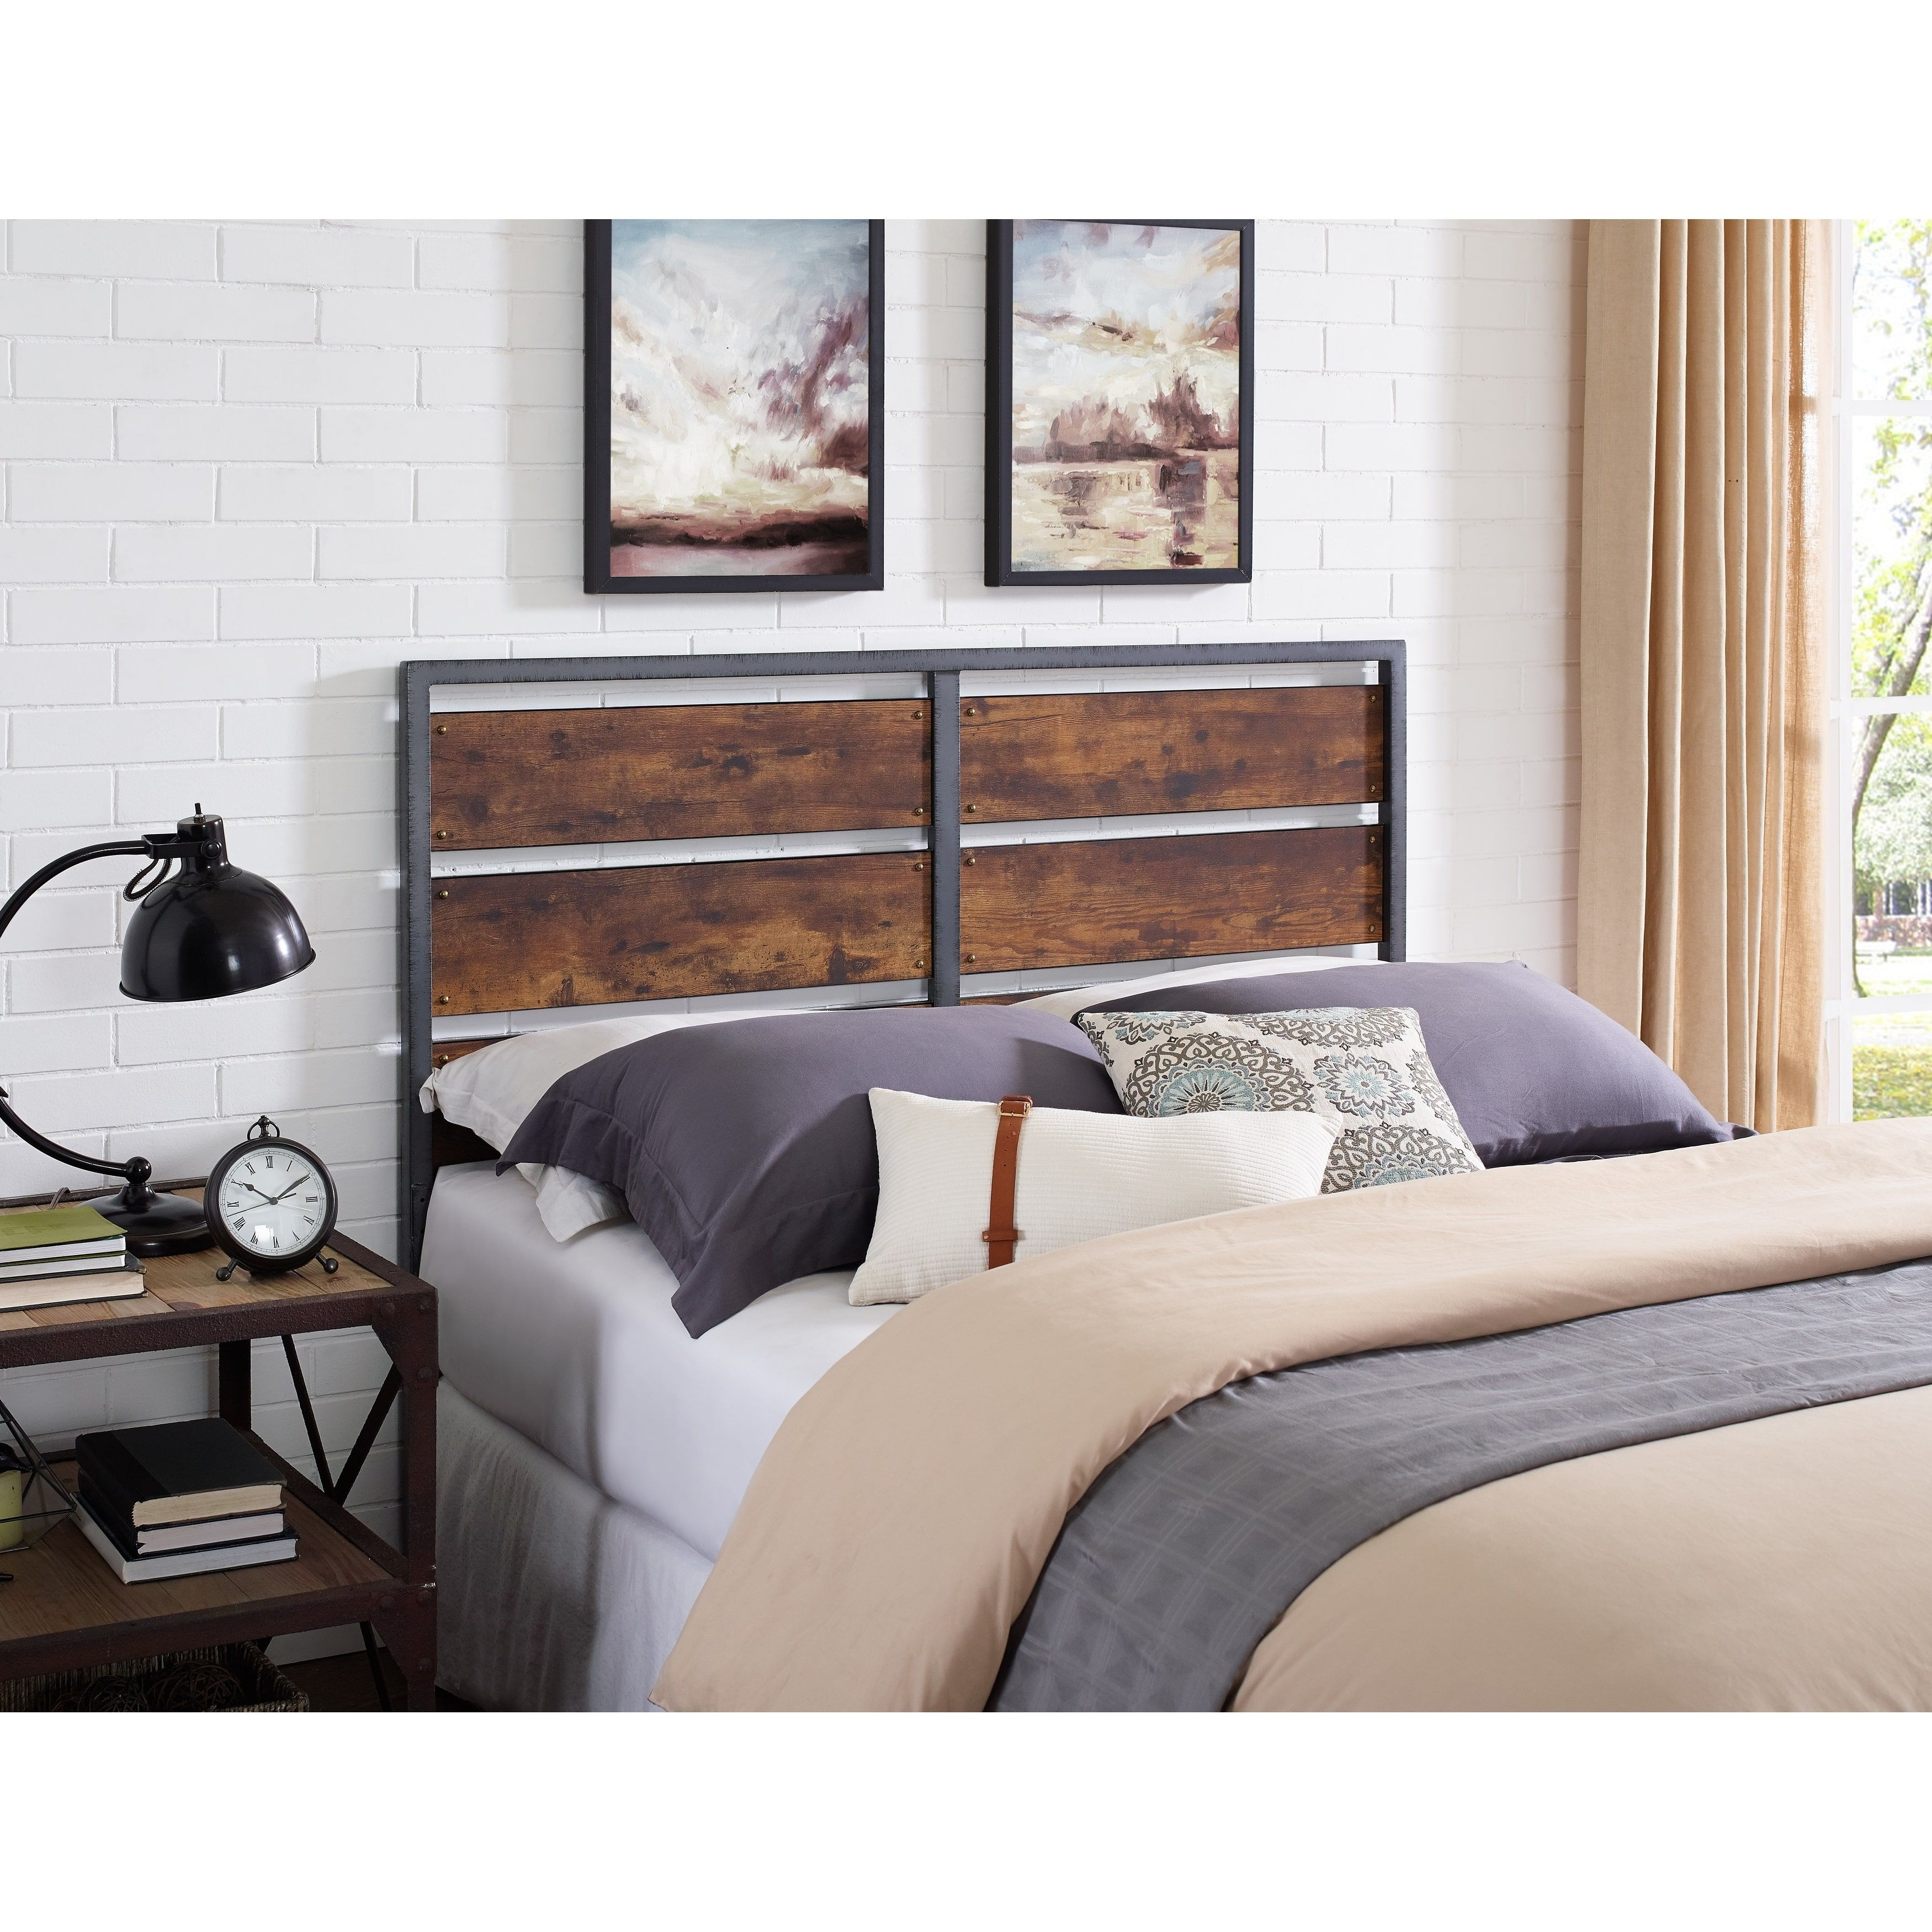 Size and Wood Plank Panel Headboard     Products   Pinterest   Wood     Bring an exciting look to your bed chamber by choosing this Walker Edison  Furniture Company Brown Queen Size Metal and Wood Plank Panel Headboard